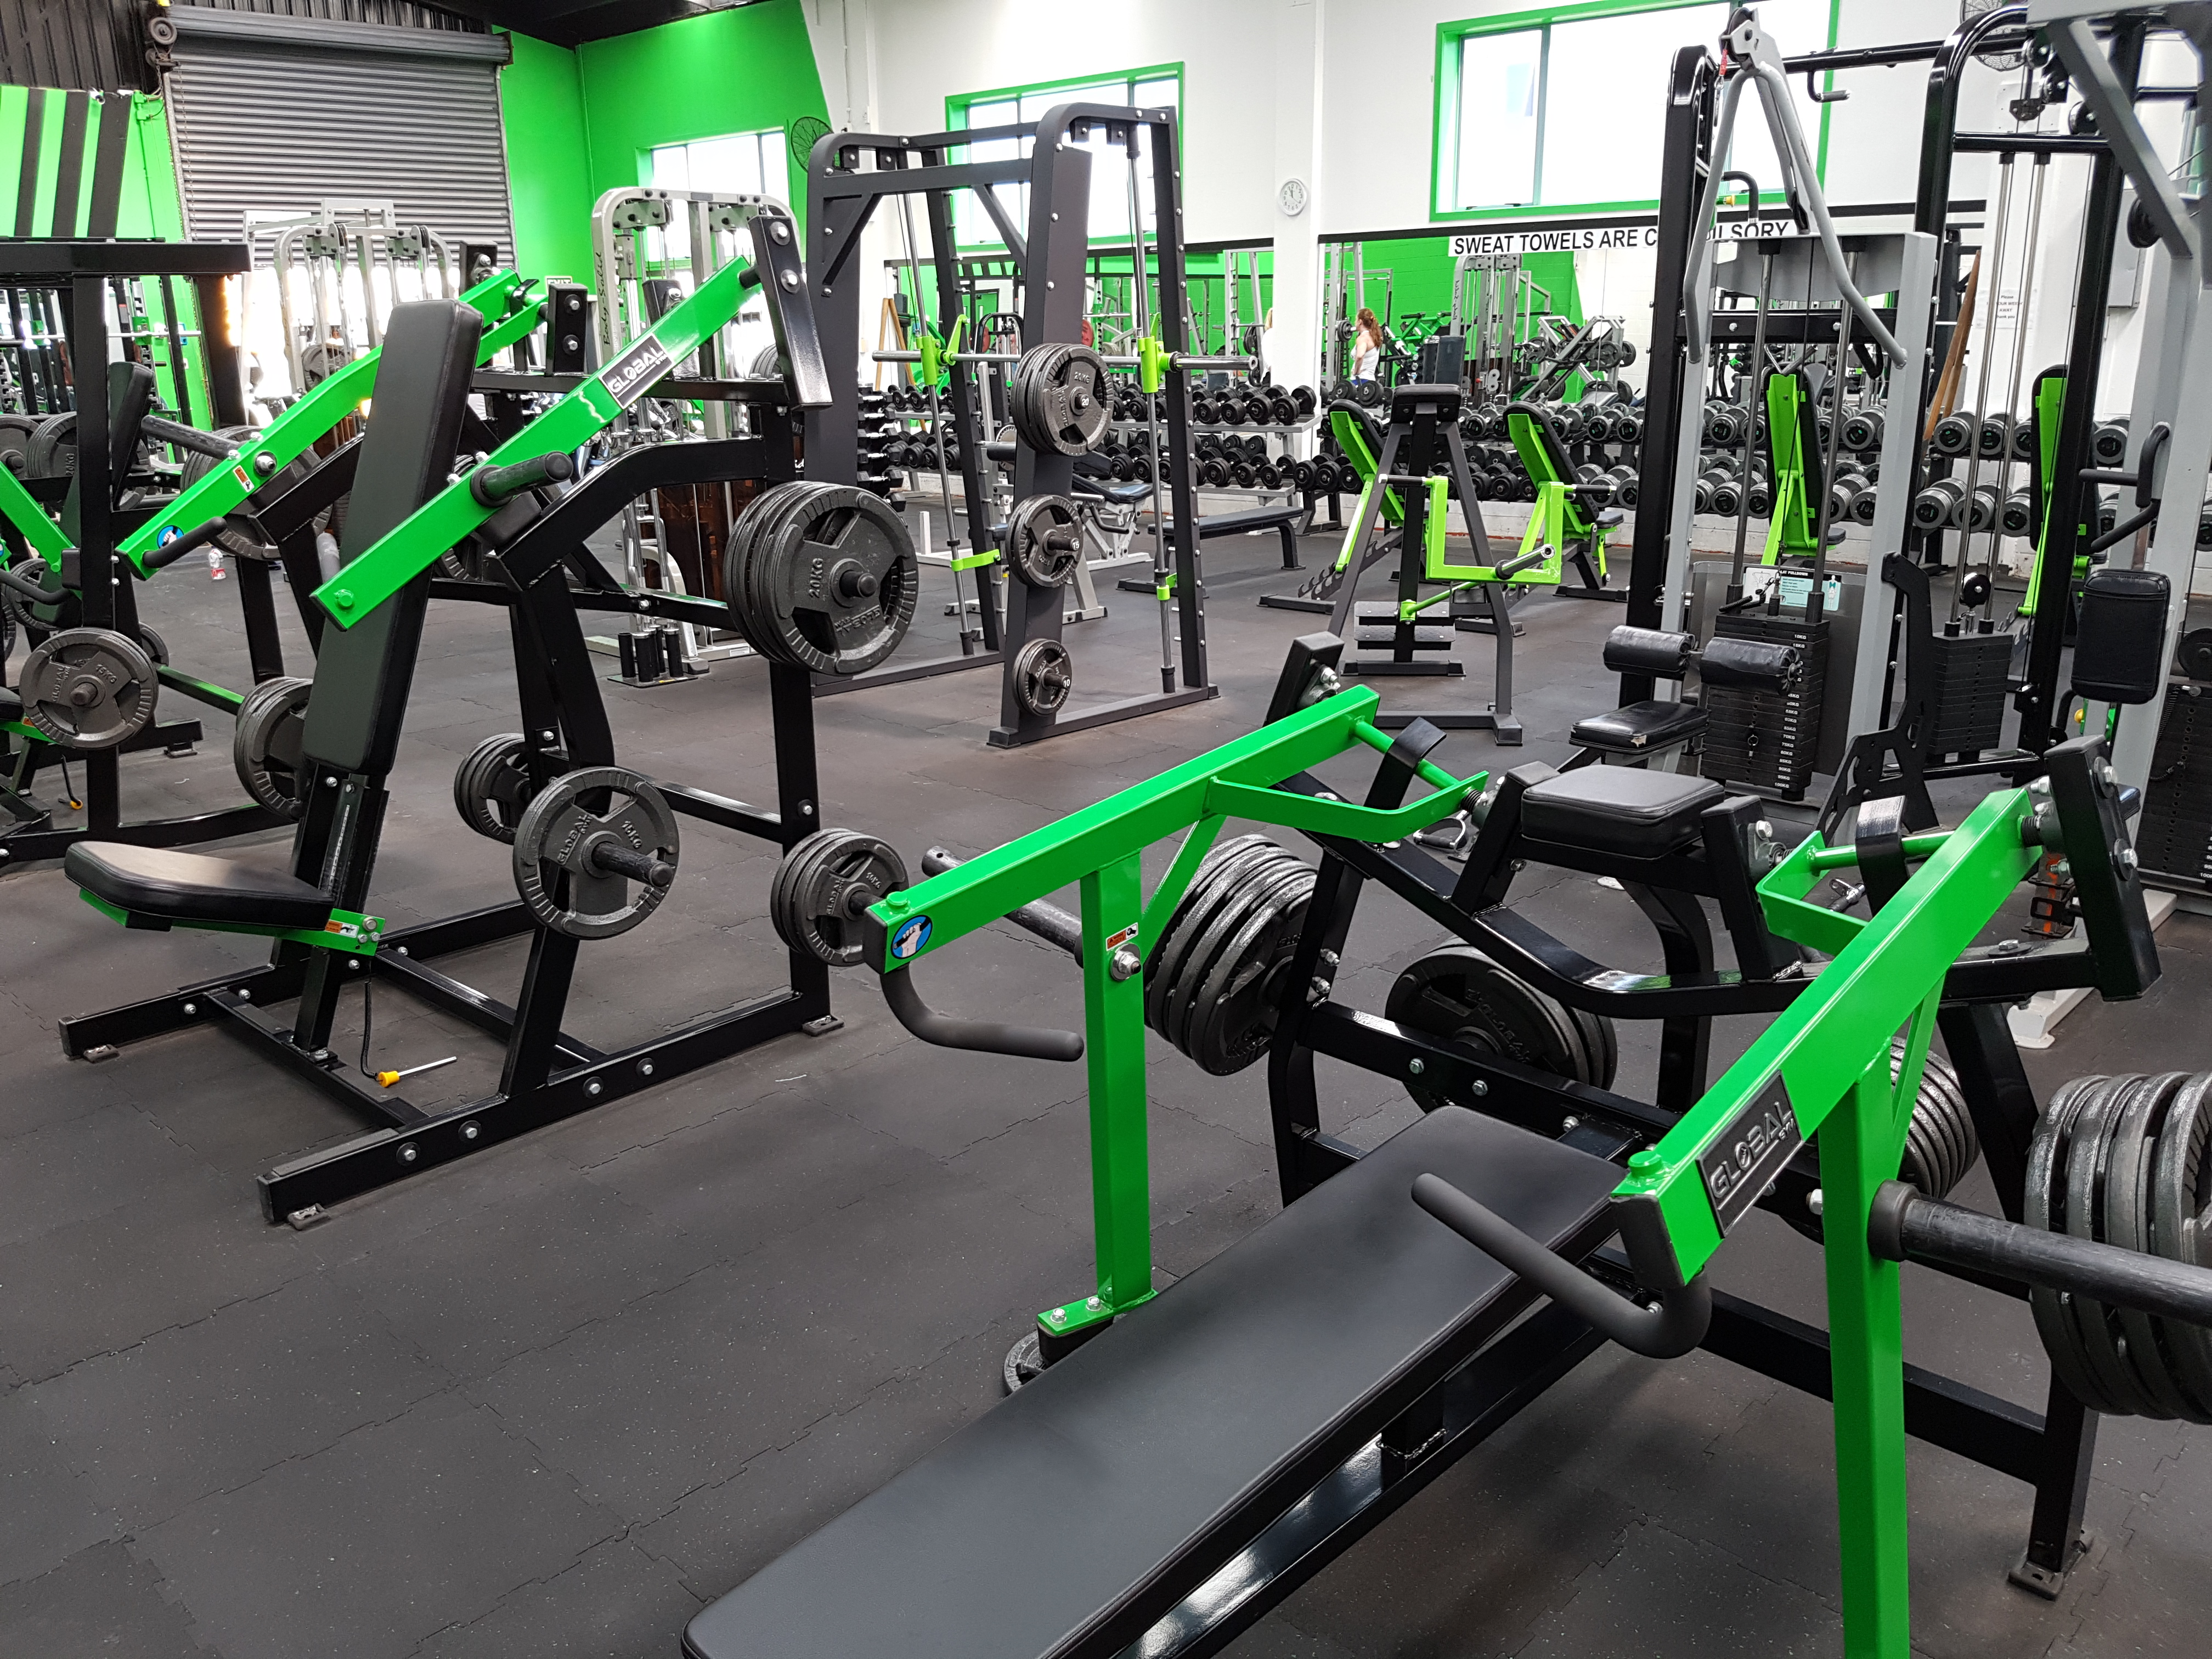 Best gym in Mt Maunganui